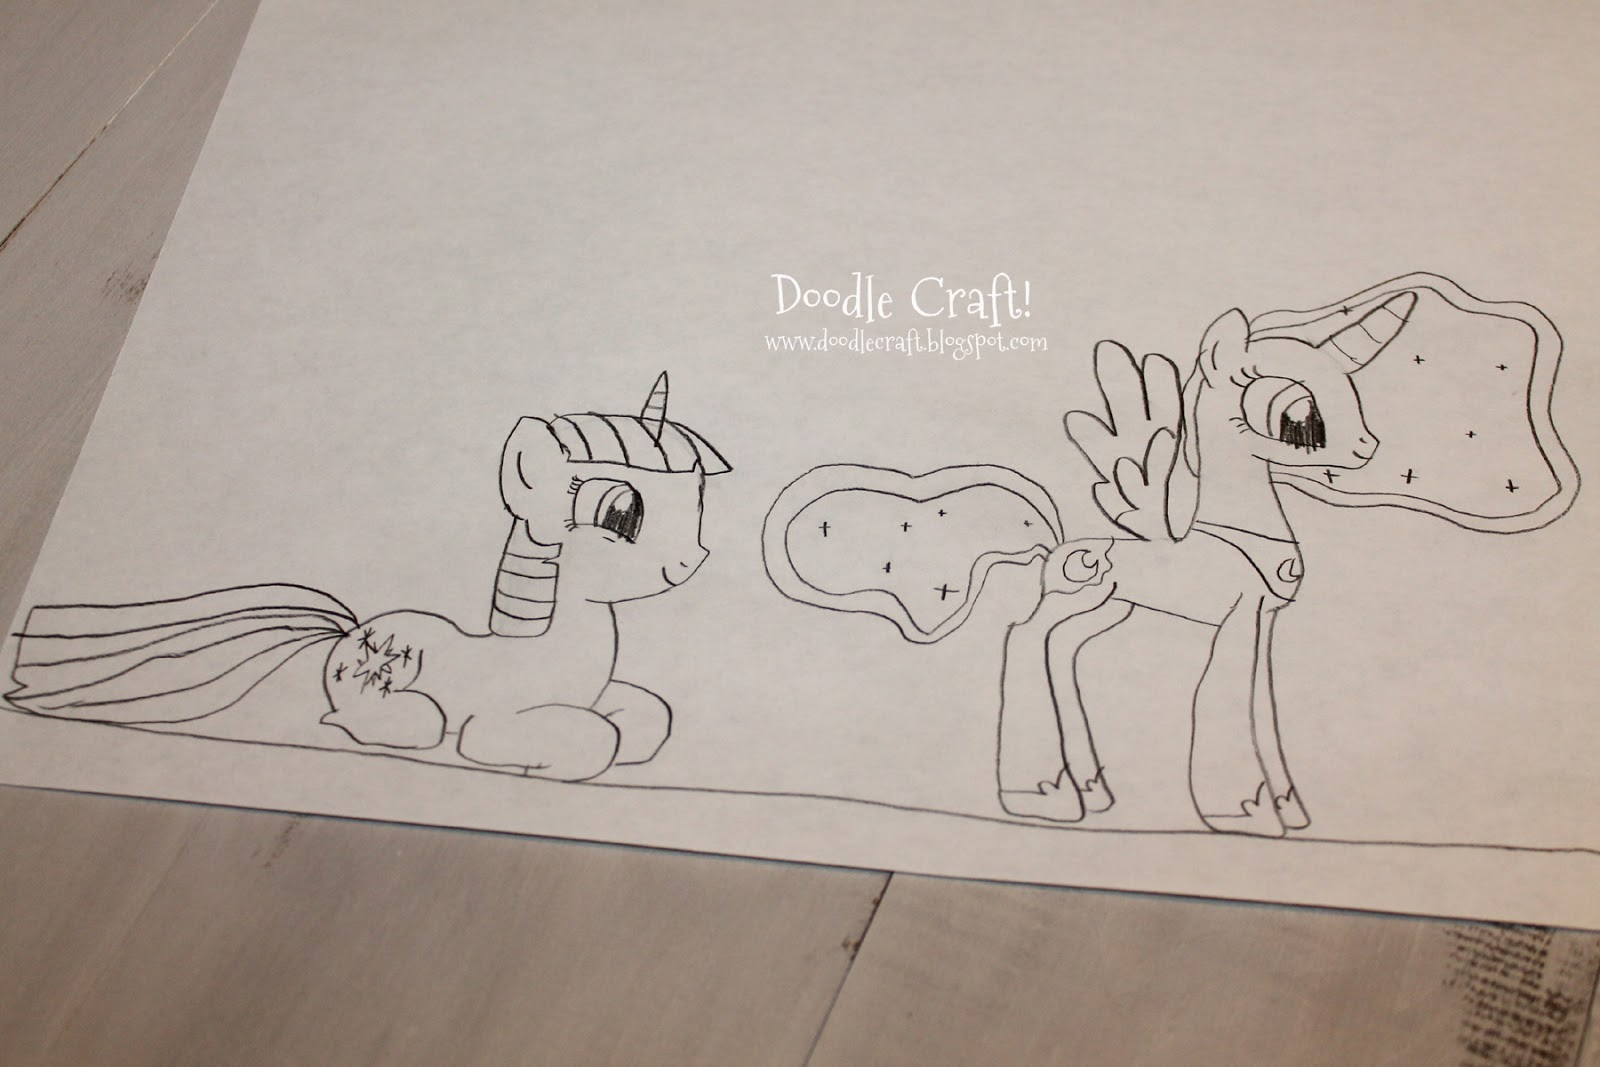 Drawn paper mlp Pony! Design More old daughter: